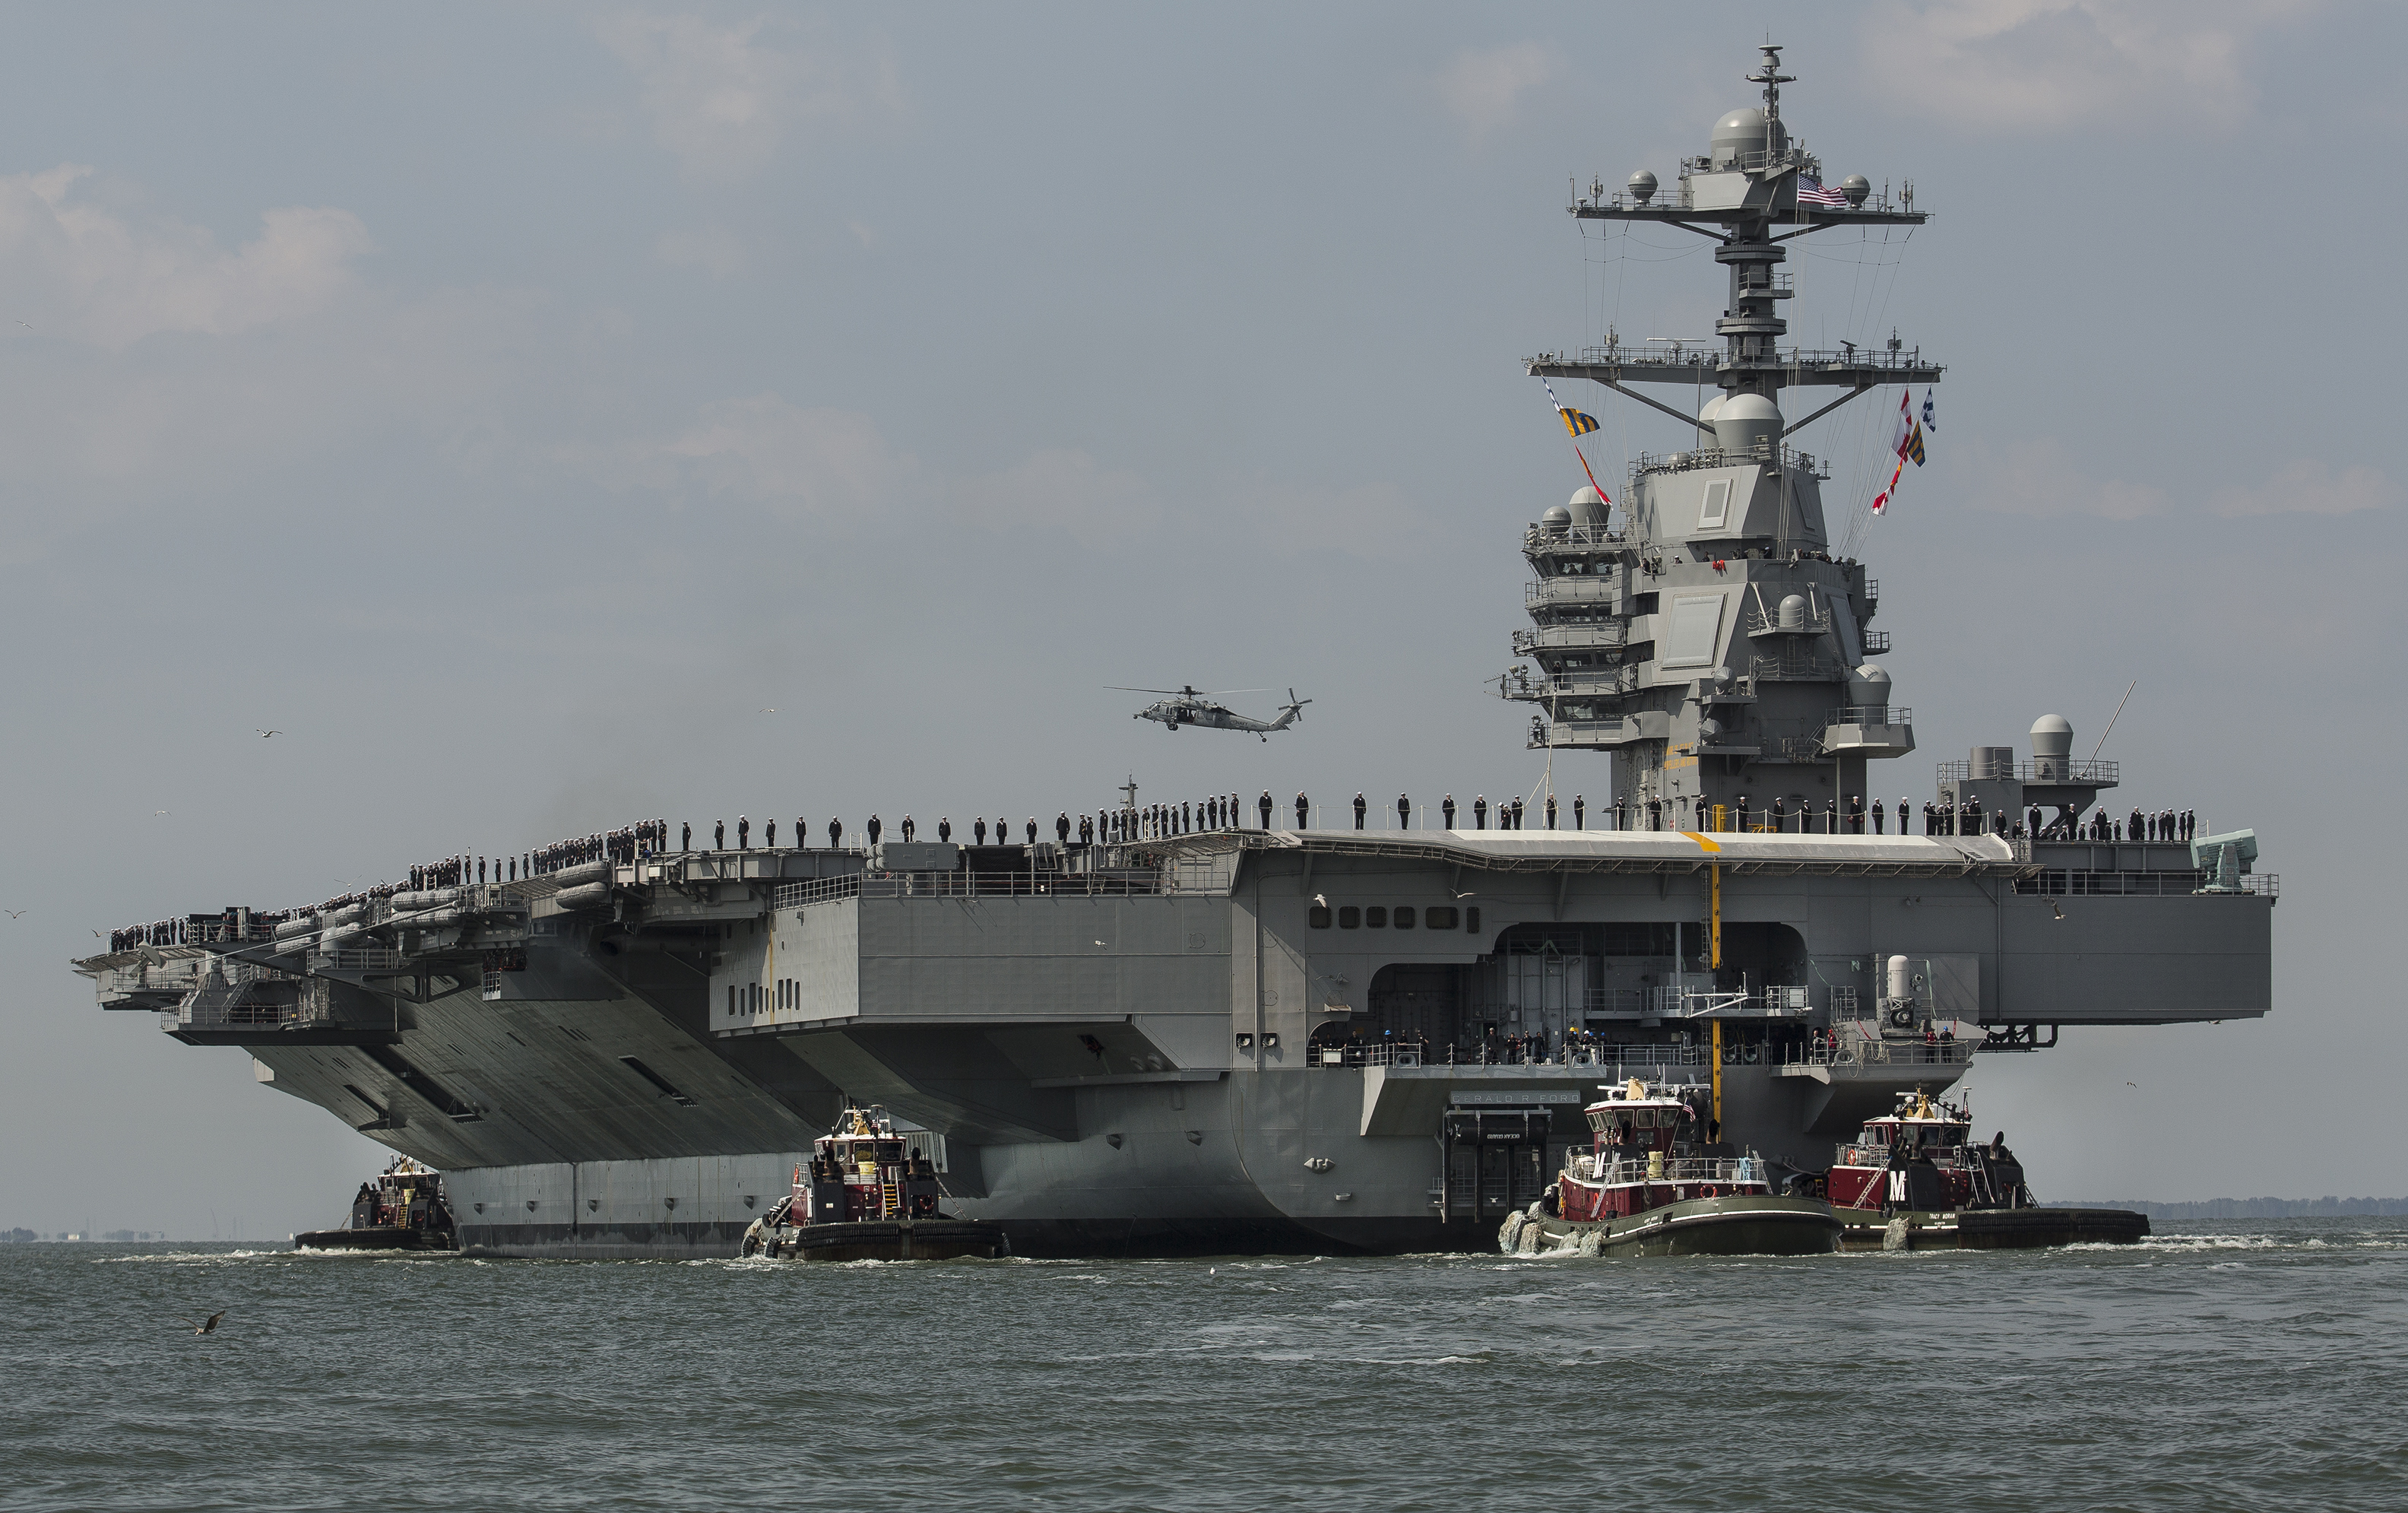 In this April 14, 2017 file photo, as crew members stand on the deck, the aircraft carrier USS Gerald R. Ford heads to the Norfolk, Va., naval station.